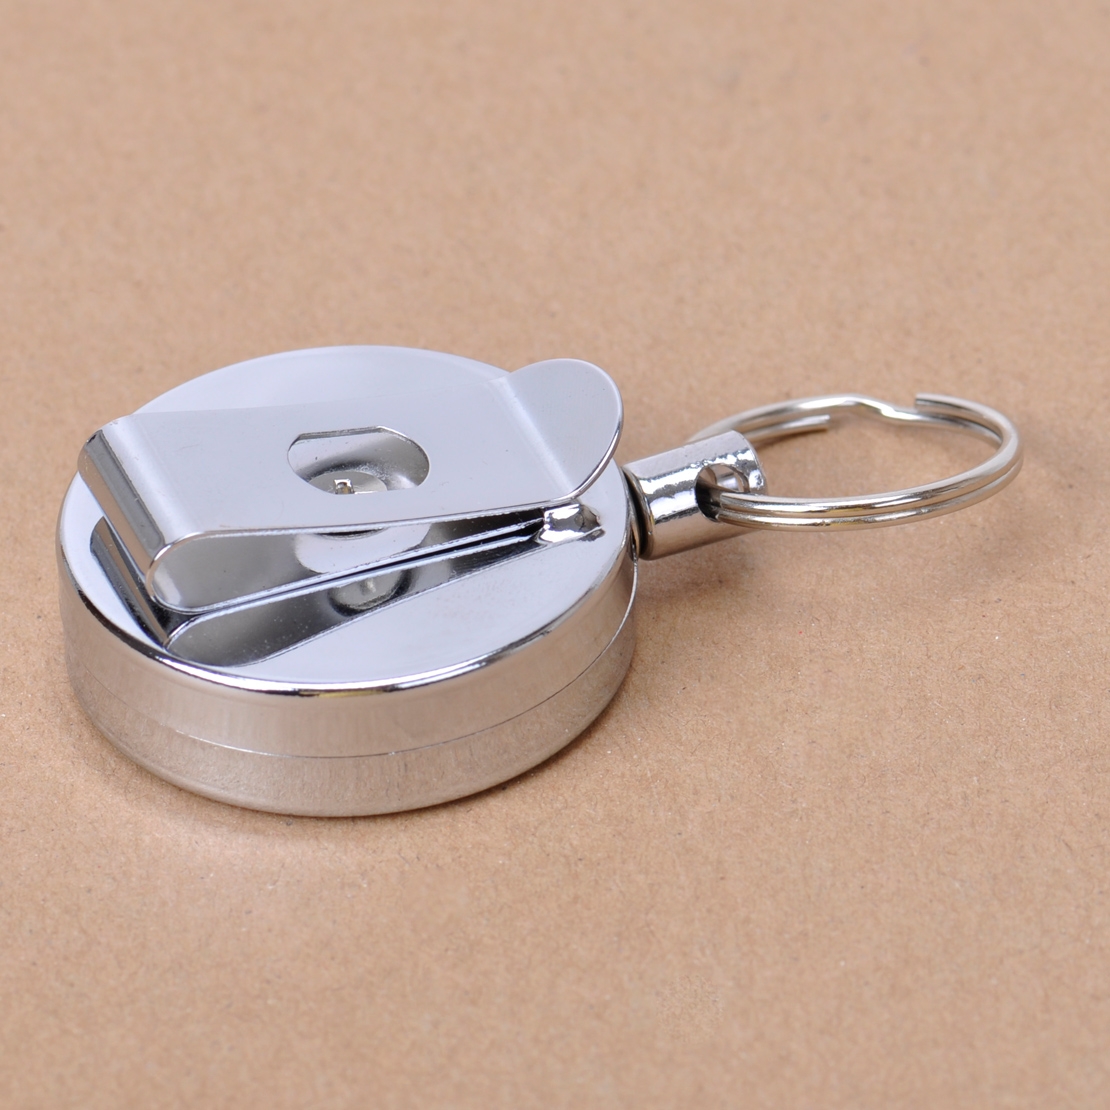 how to fix retractable key holder